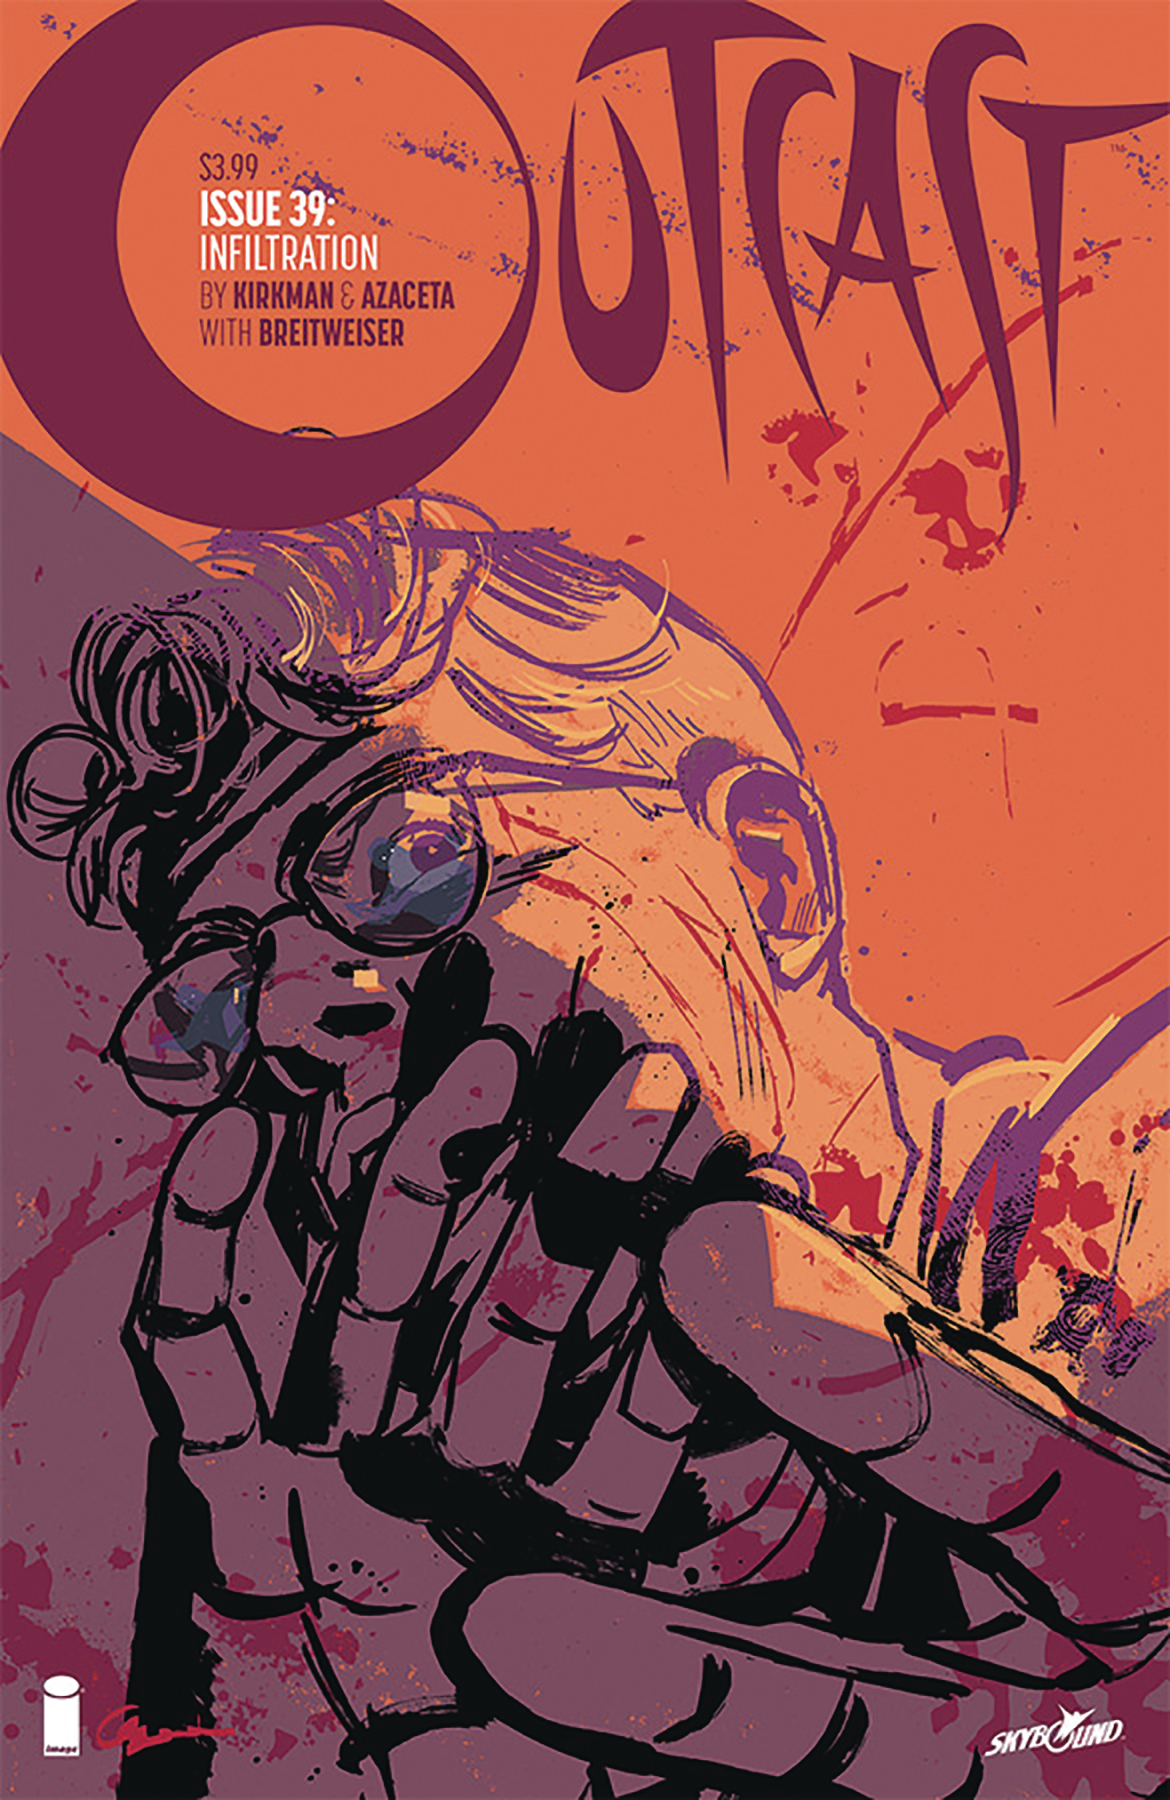 OUTCAST BY KIRKMAN & AZACETA #39 (MR)